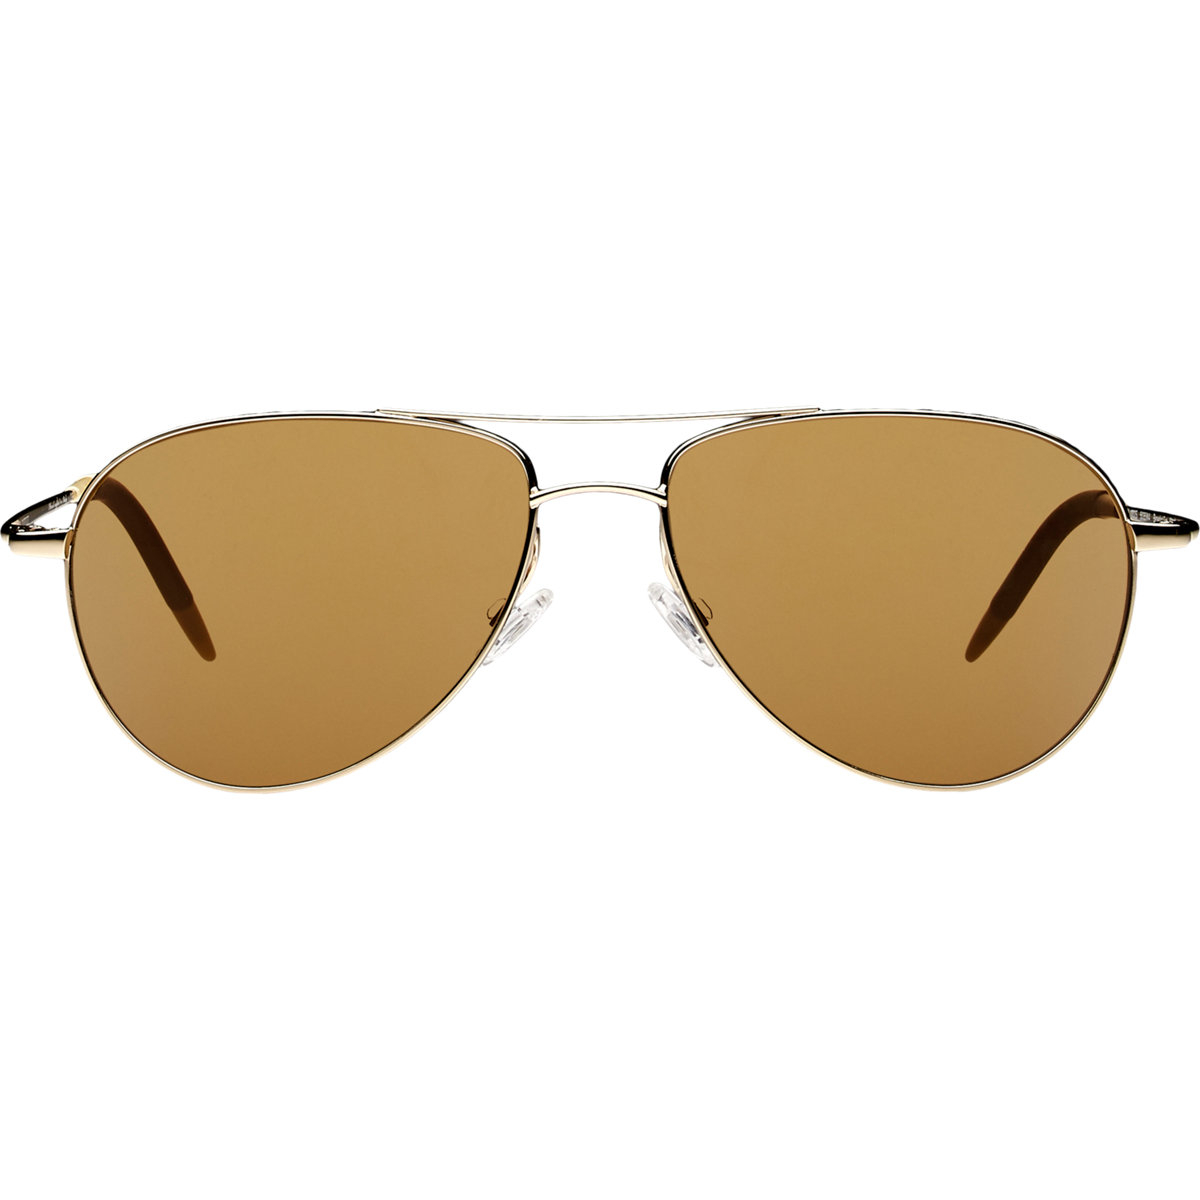 fc53a21108f6 Oliver Peoples Green Mirrored Aviator Sunglasses